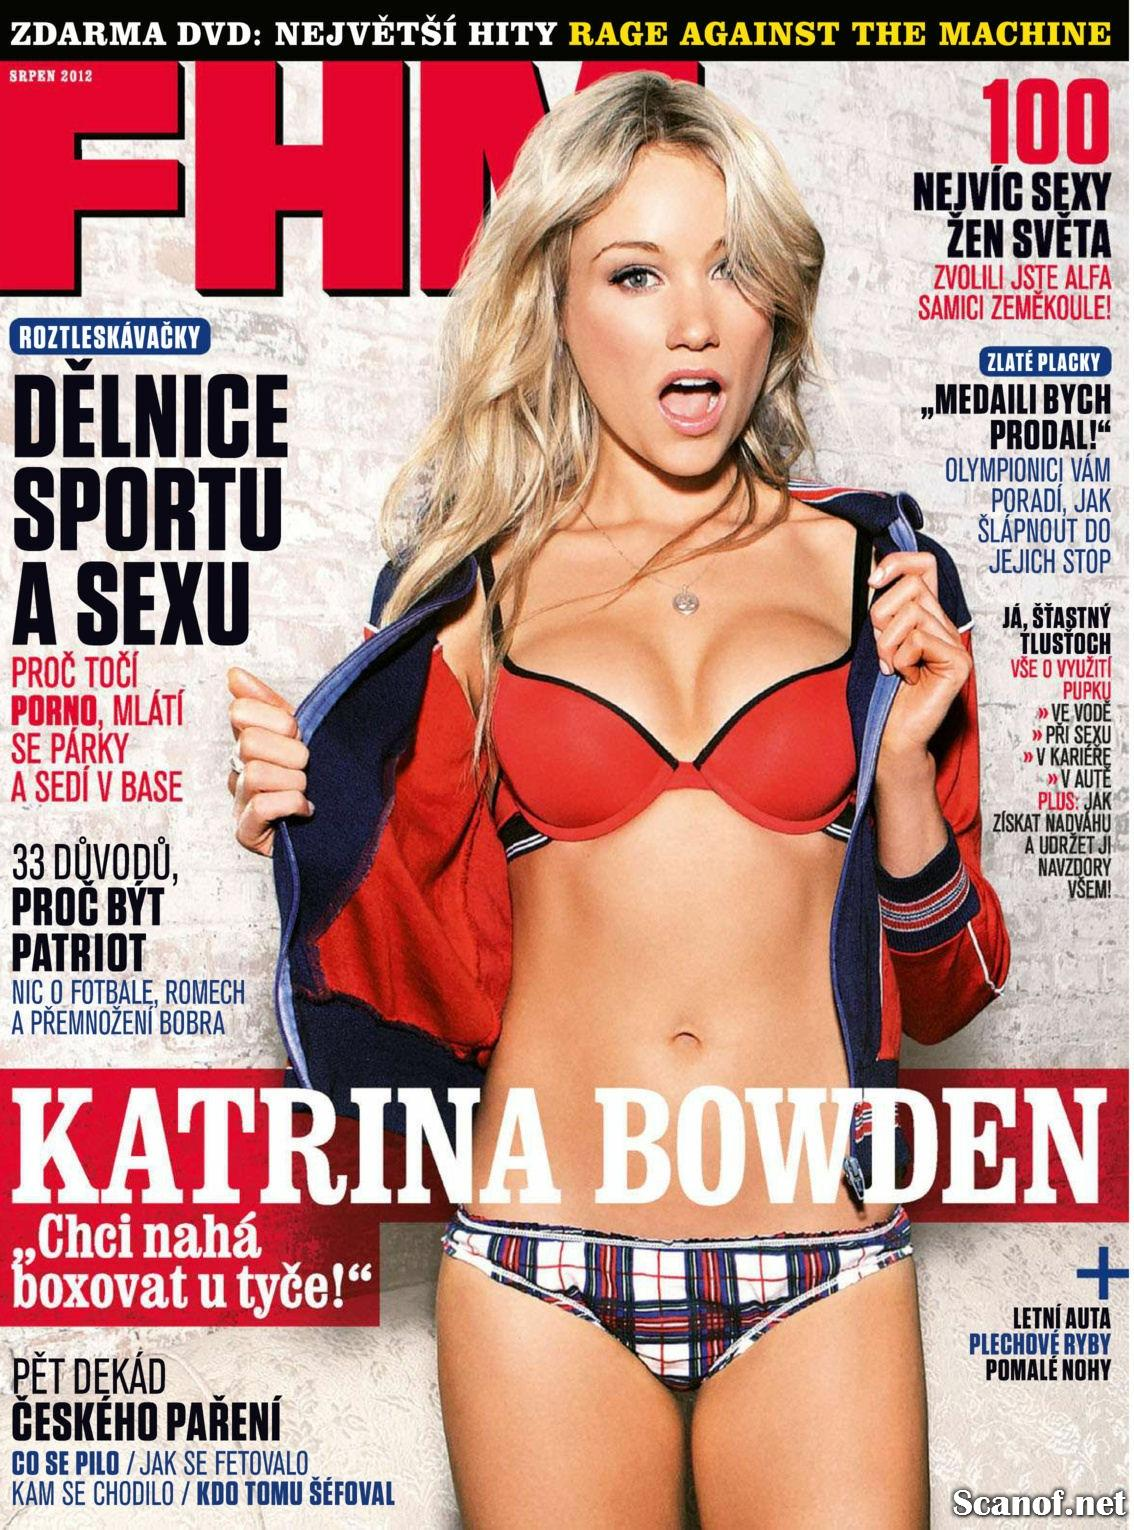 Katrina Bowden FHM, Czech Republic, August 2012